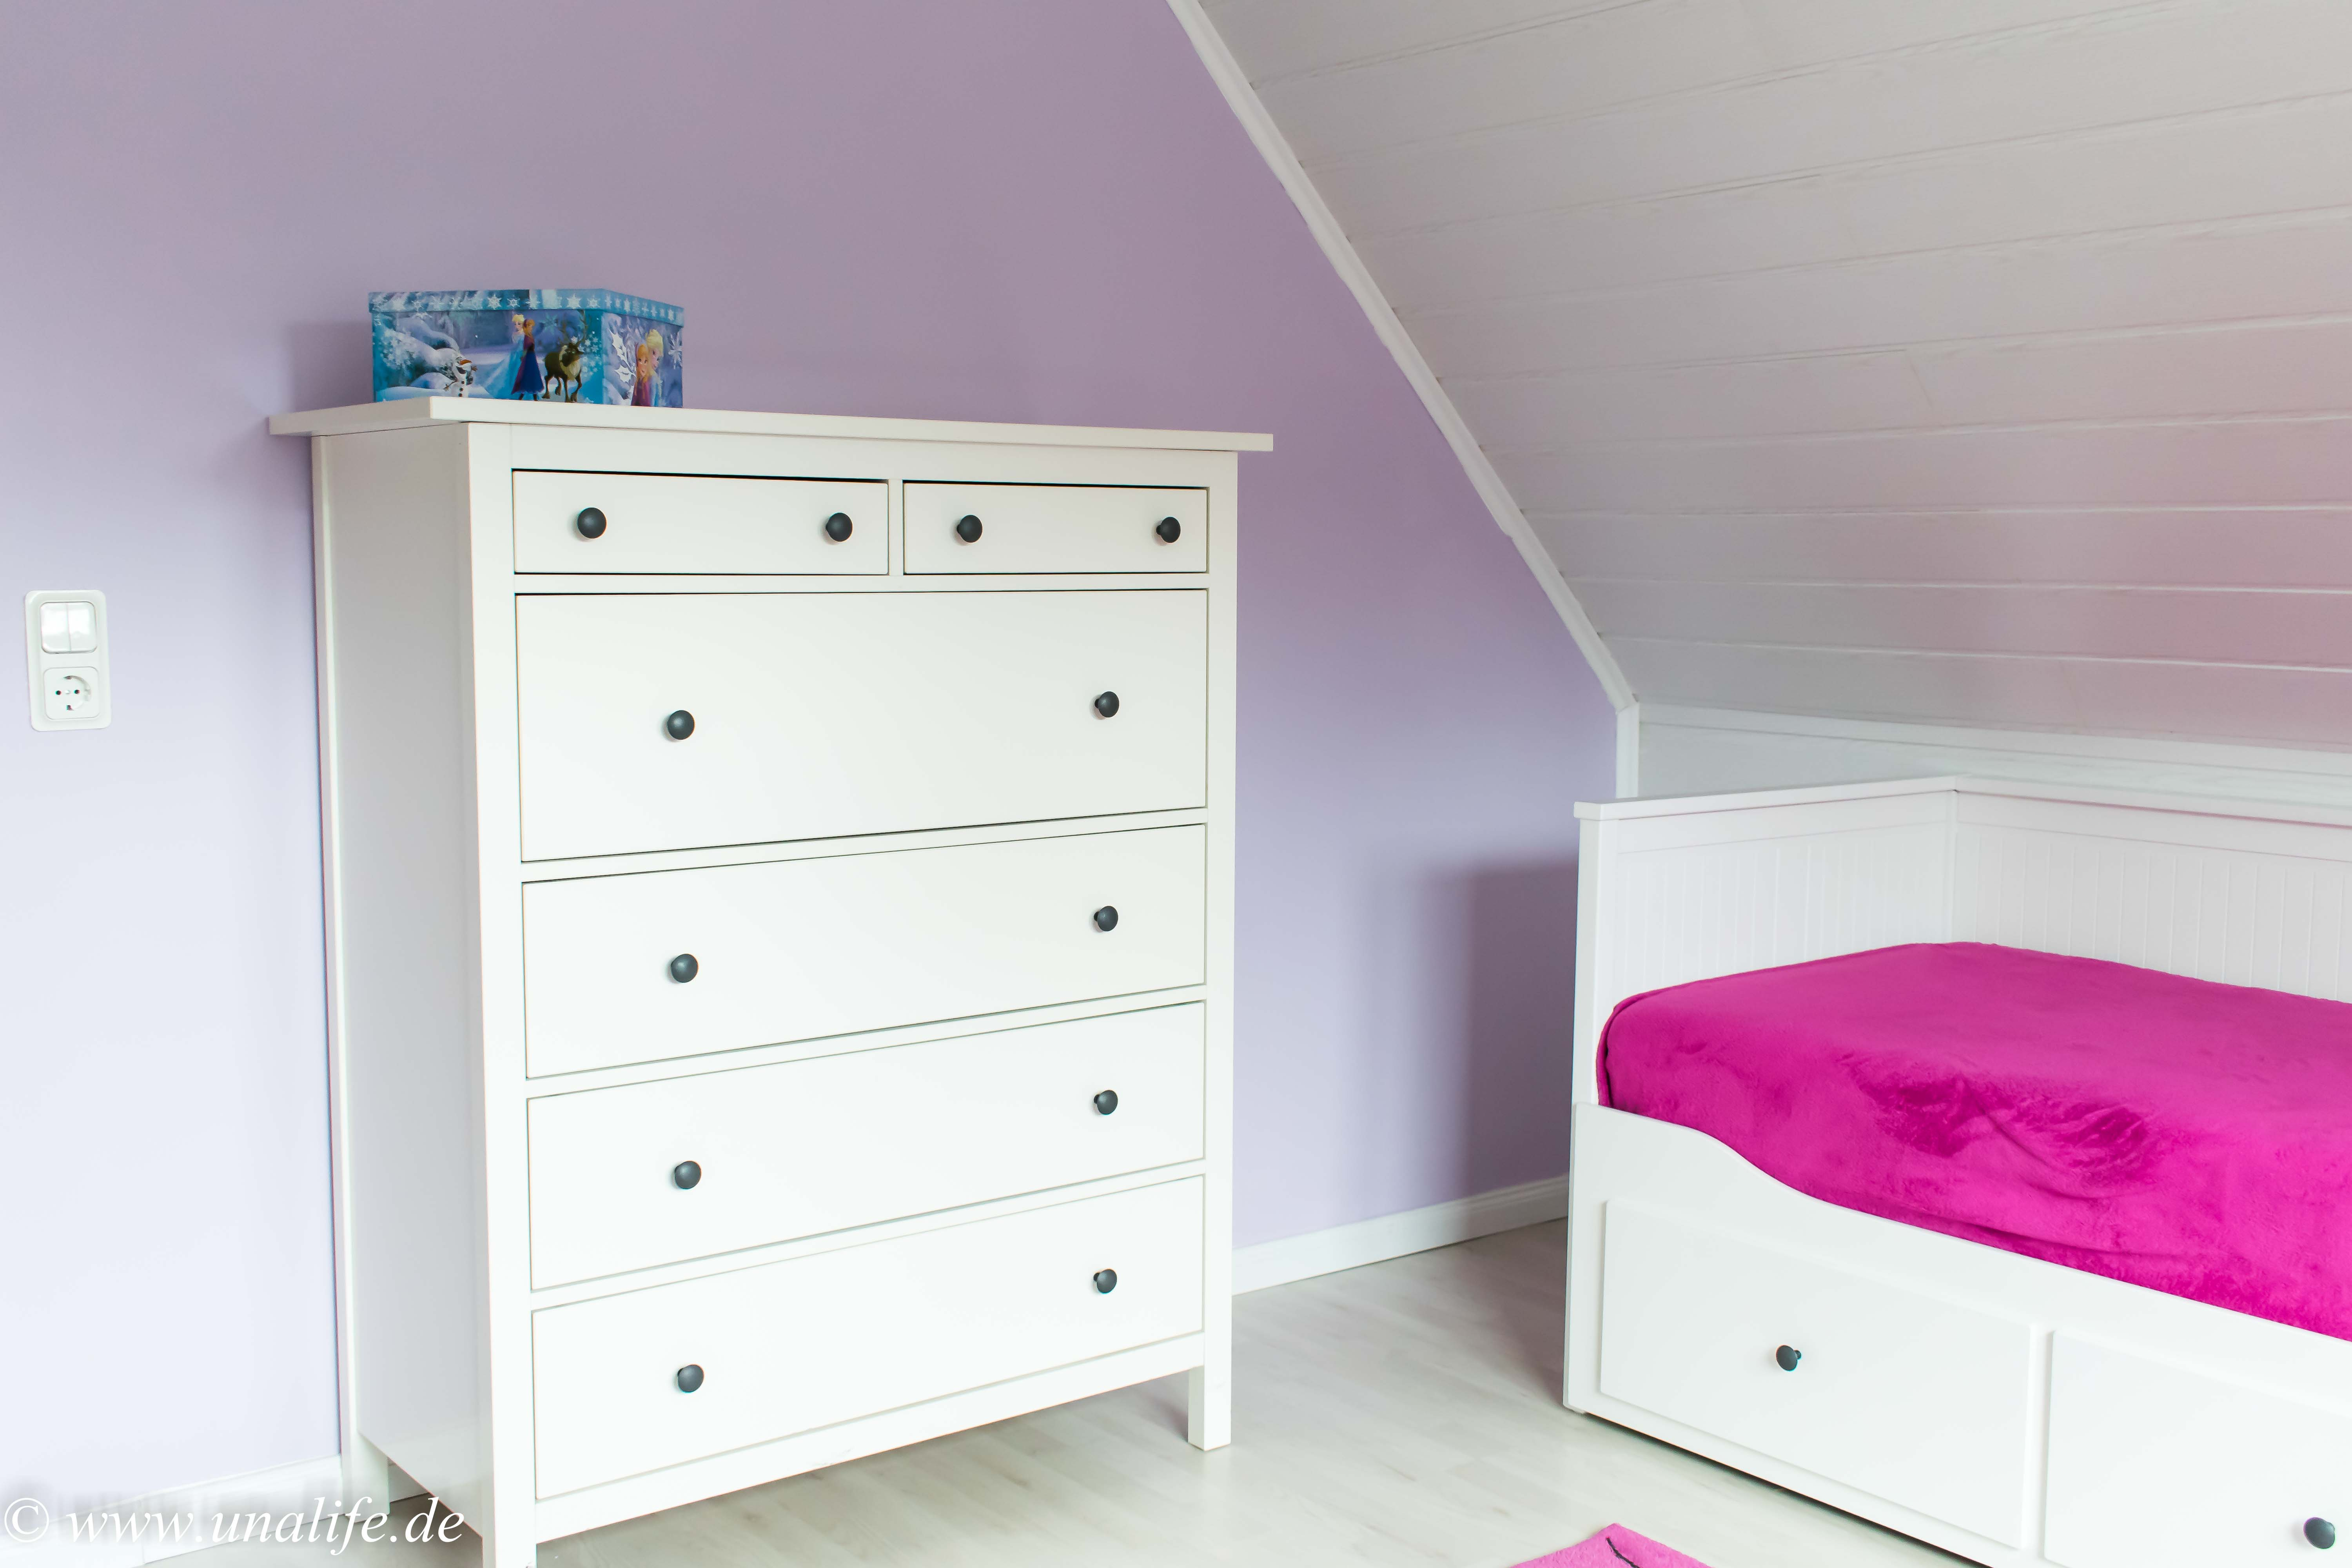 pastellfarben im kinderzimmer ikea hemnes suche nach. Black Bedroom Furniture Sets. Home Design Ideas